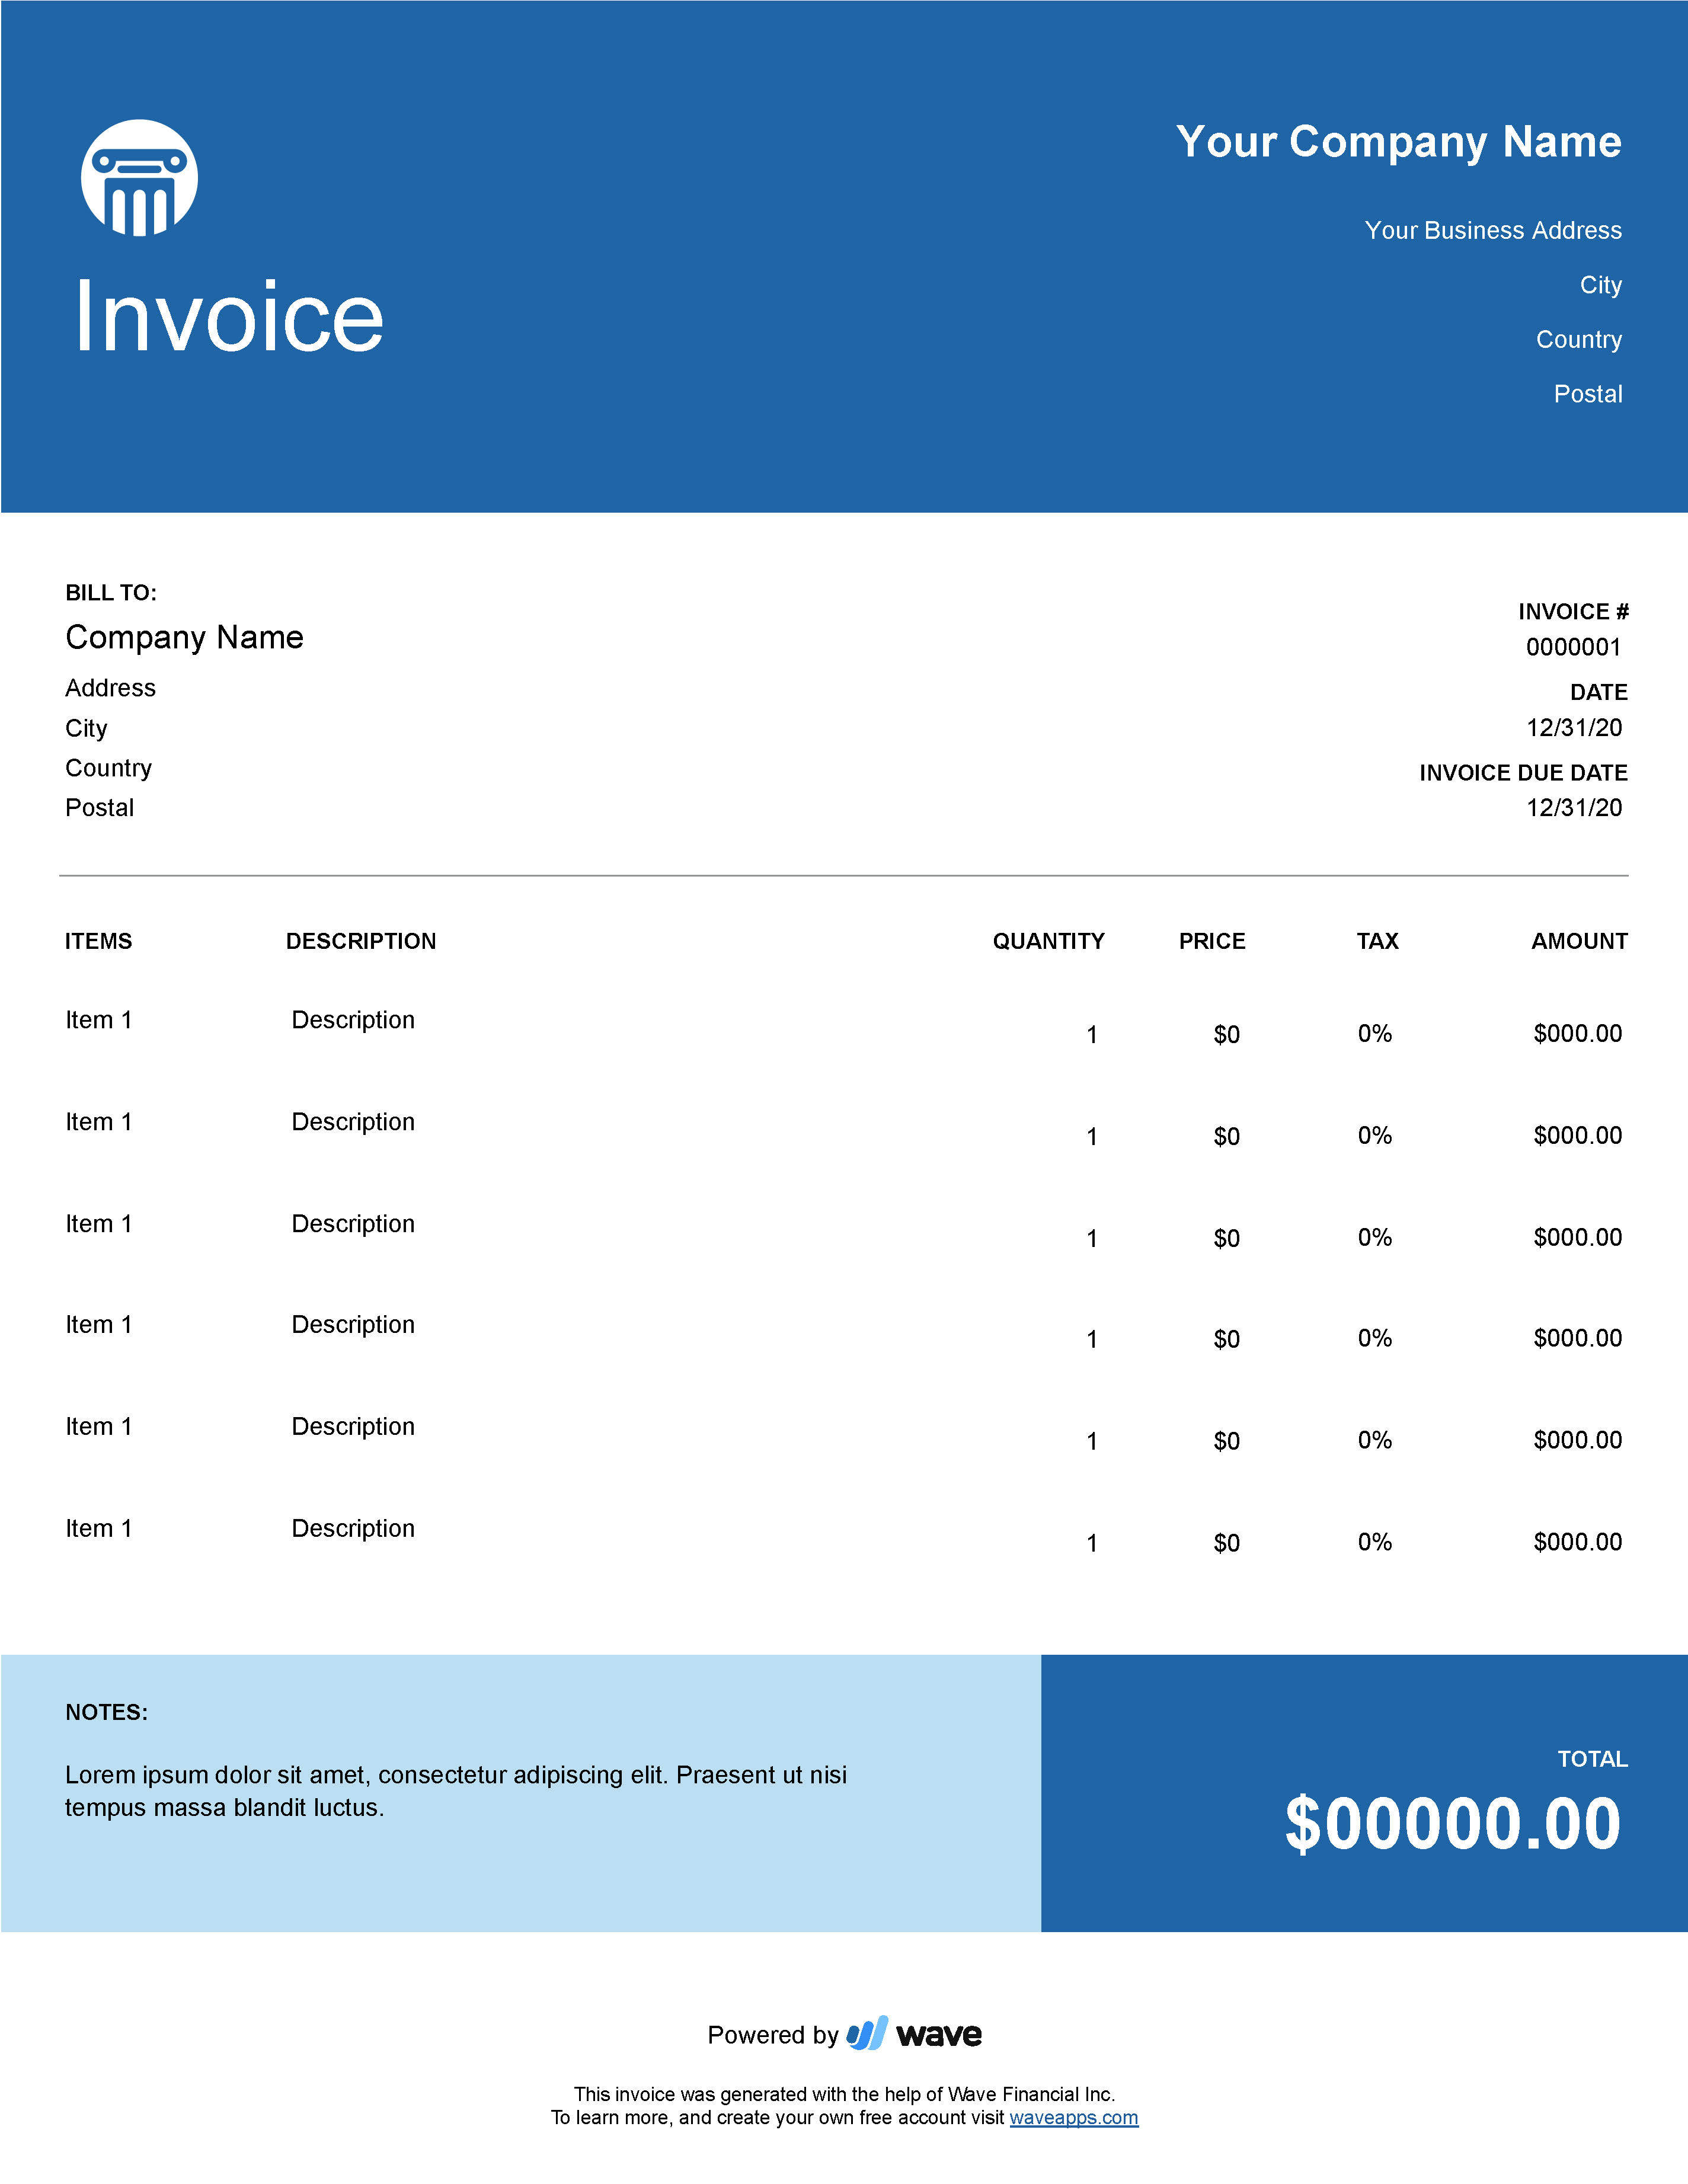 Law Firm Invoice Template Wave Invoicing